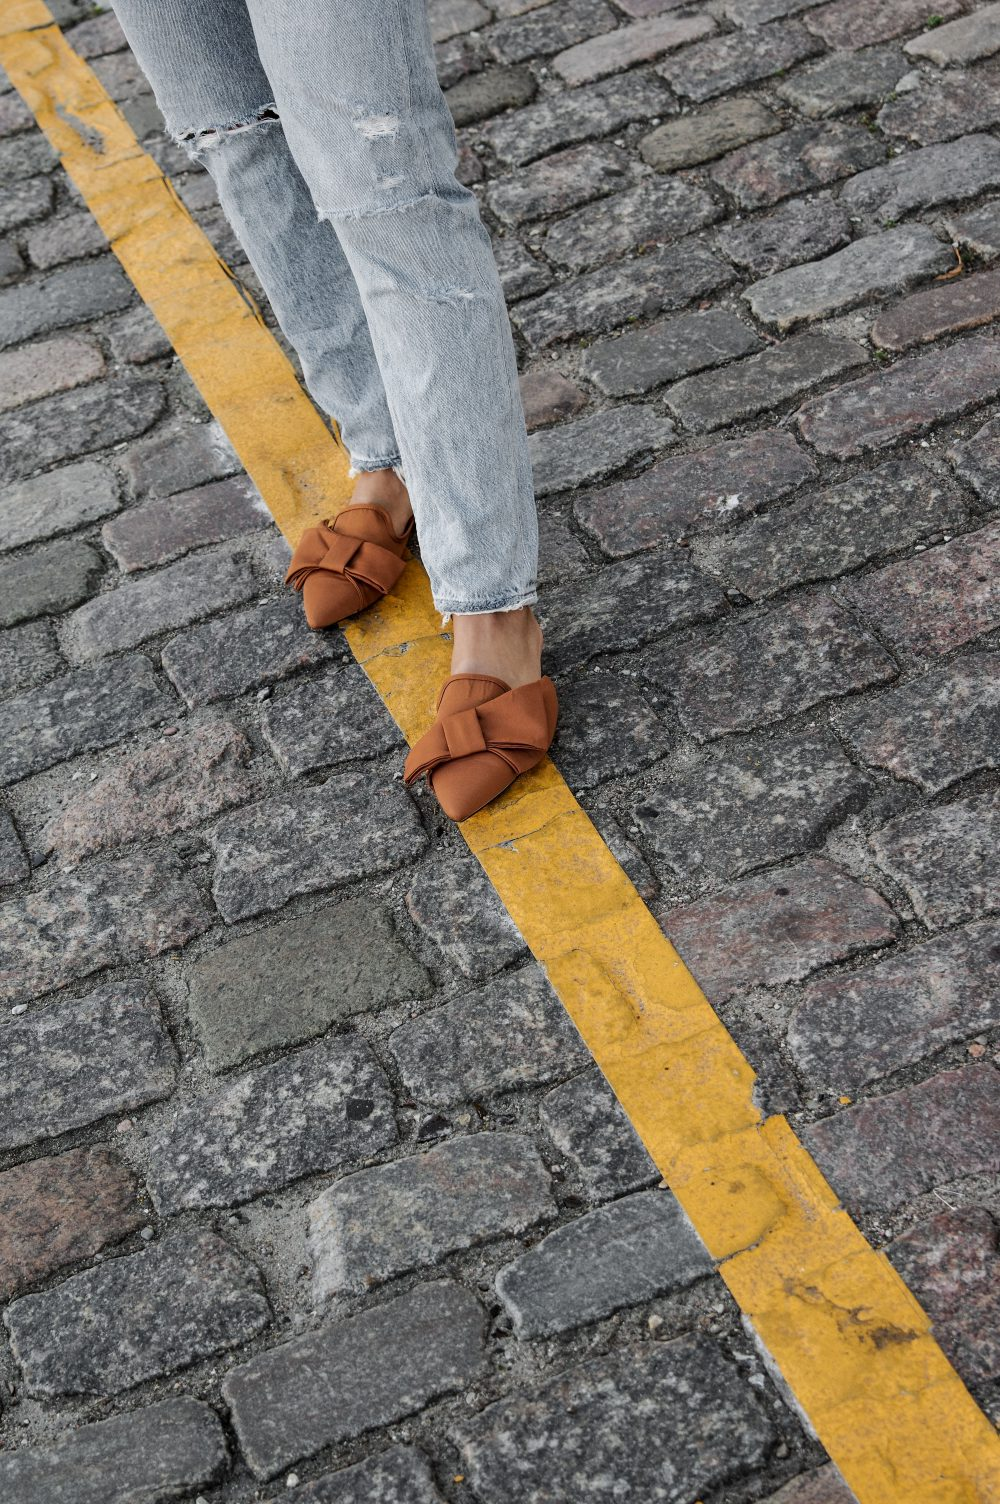 pre-fall-shoes-mules-shoes-summer-shoes-autumn-shoes-fall-shoes-heels-flats-sandals-boots-shoes-to-wear-at-work-shoes-to-wear-in-September